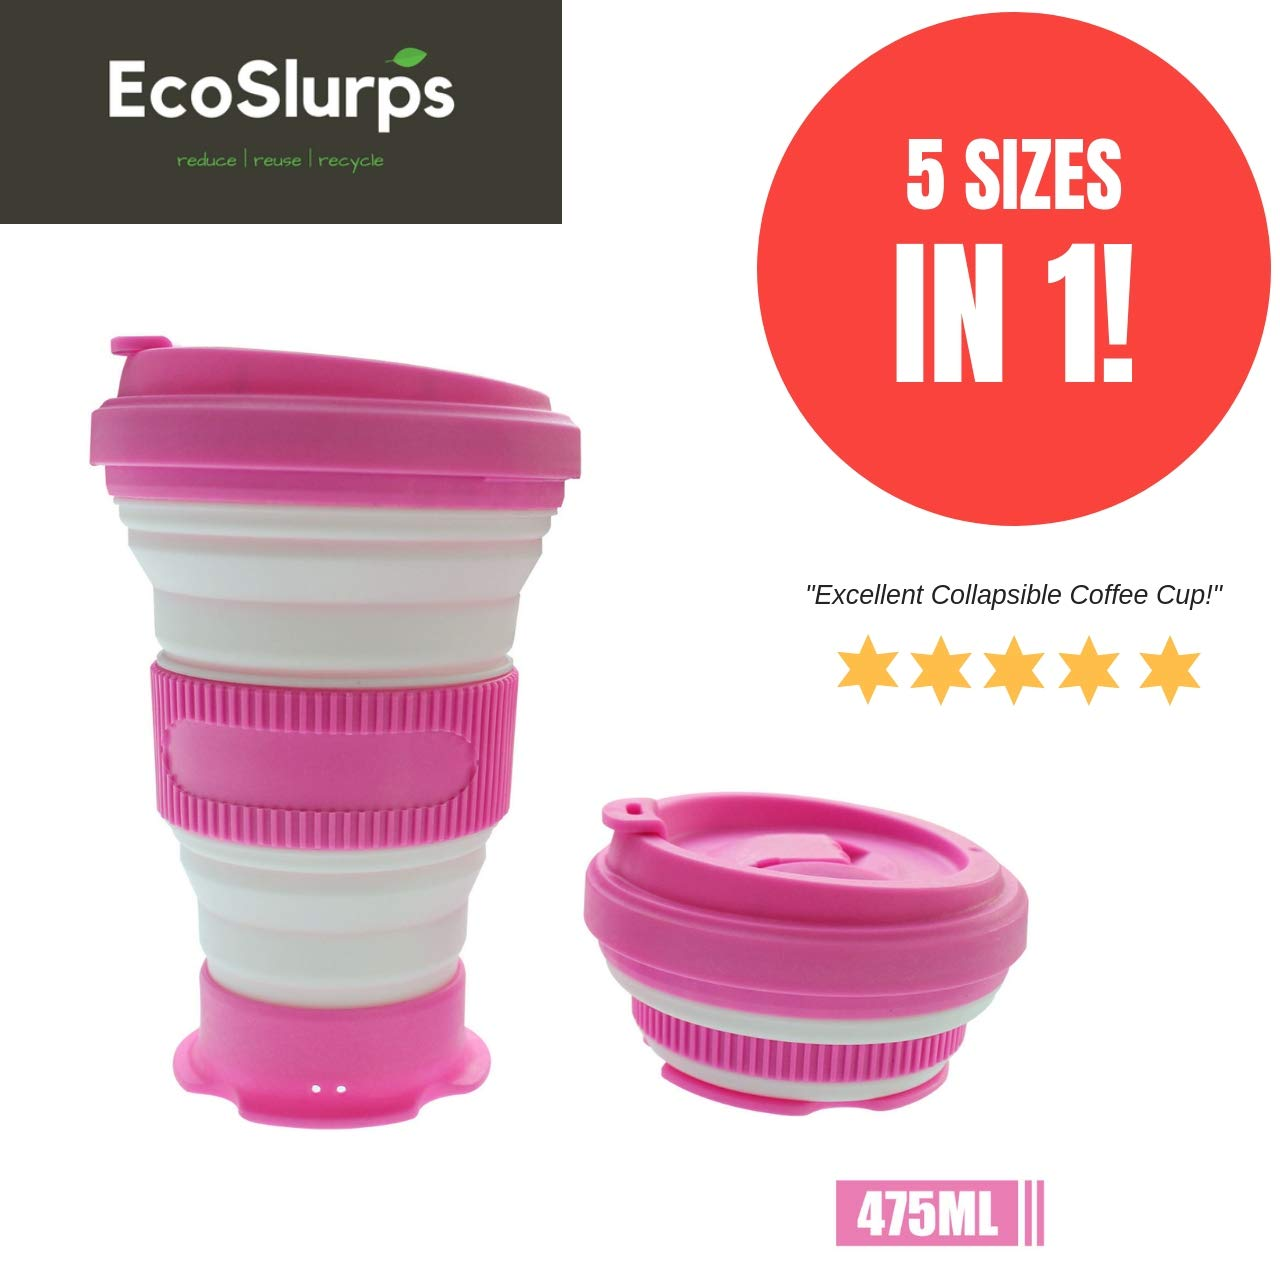 EcoSlurps Black Reusable Collapsible Coffee Cup - 5 Sizes in 1 Folding Travel Mug Makes for Great Coffee Gift. Eco Friendly, Lightweight, Leak Proof & Dishwasher Safe